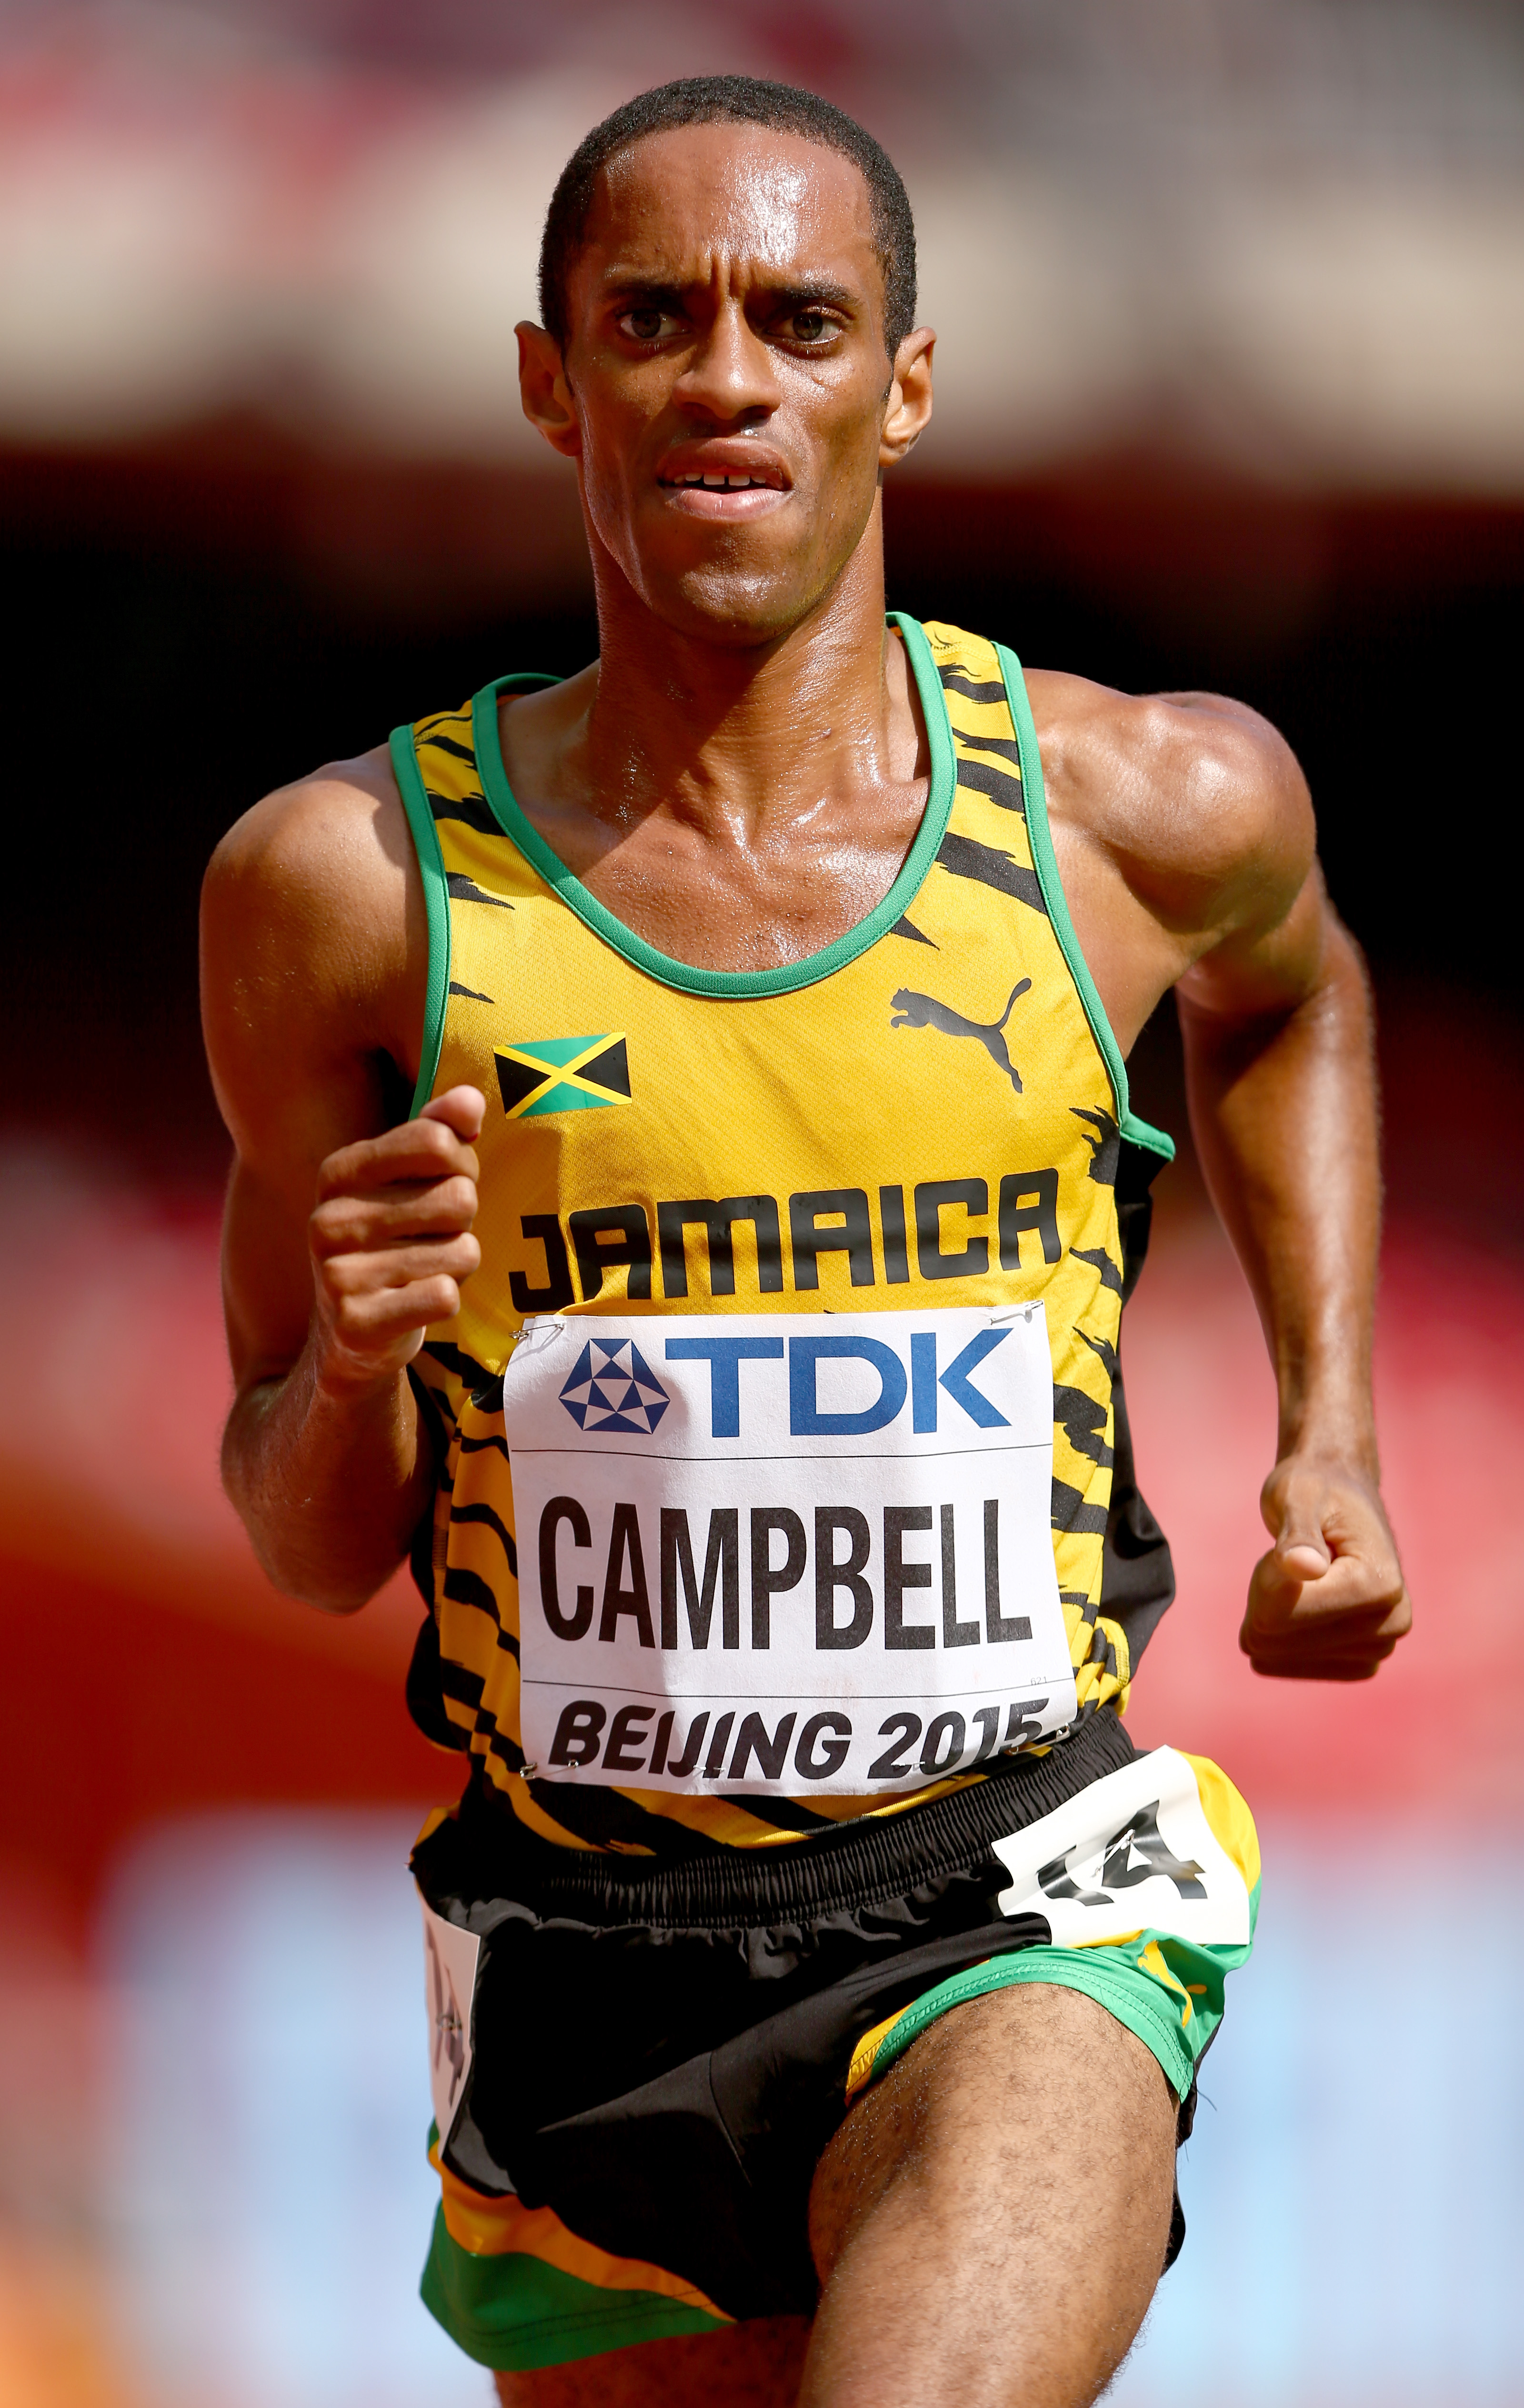 BEIJING, CHINA - AUGUST 26: Kemoy Campbell of Jamaica competes in the Men's 5000 metres heats during day five of the 15th IAAF World Athletics Championships Beijing 2015 at Beijing National Stadium on August 26, 2015 in Beijing, China. (Photo by Cameron Spencer/Getty Images)